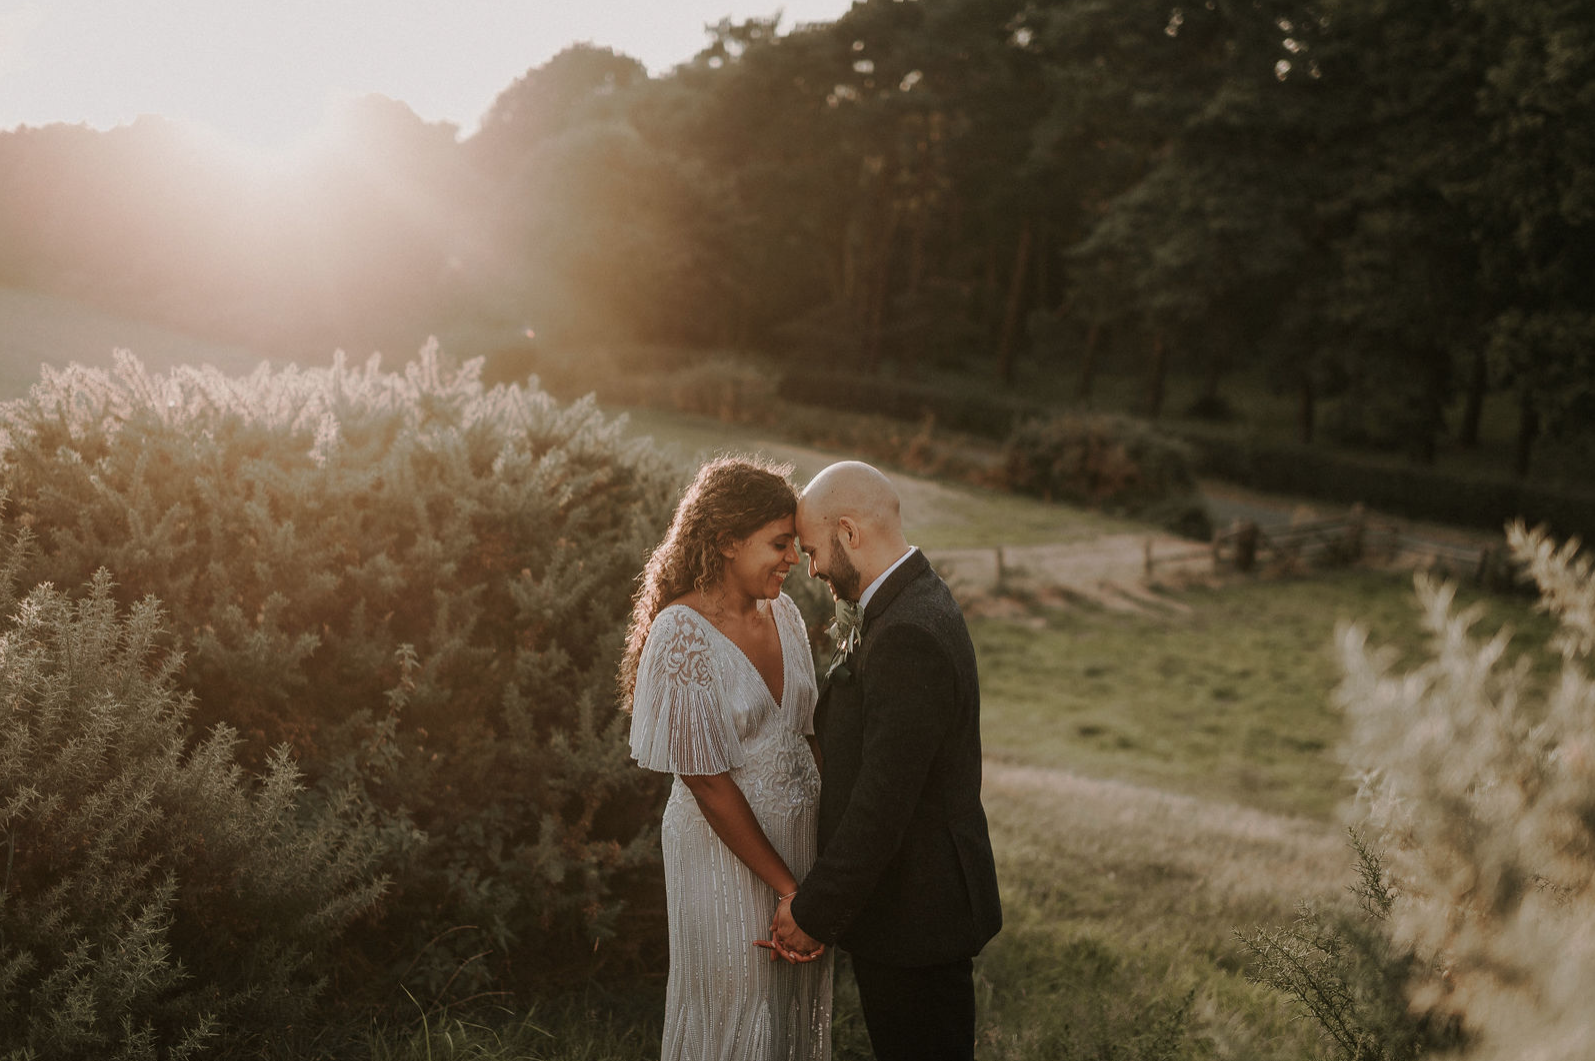 Nikittas & Neezams Wilderness Wedding - Shot by Alice Cunliffe Photography